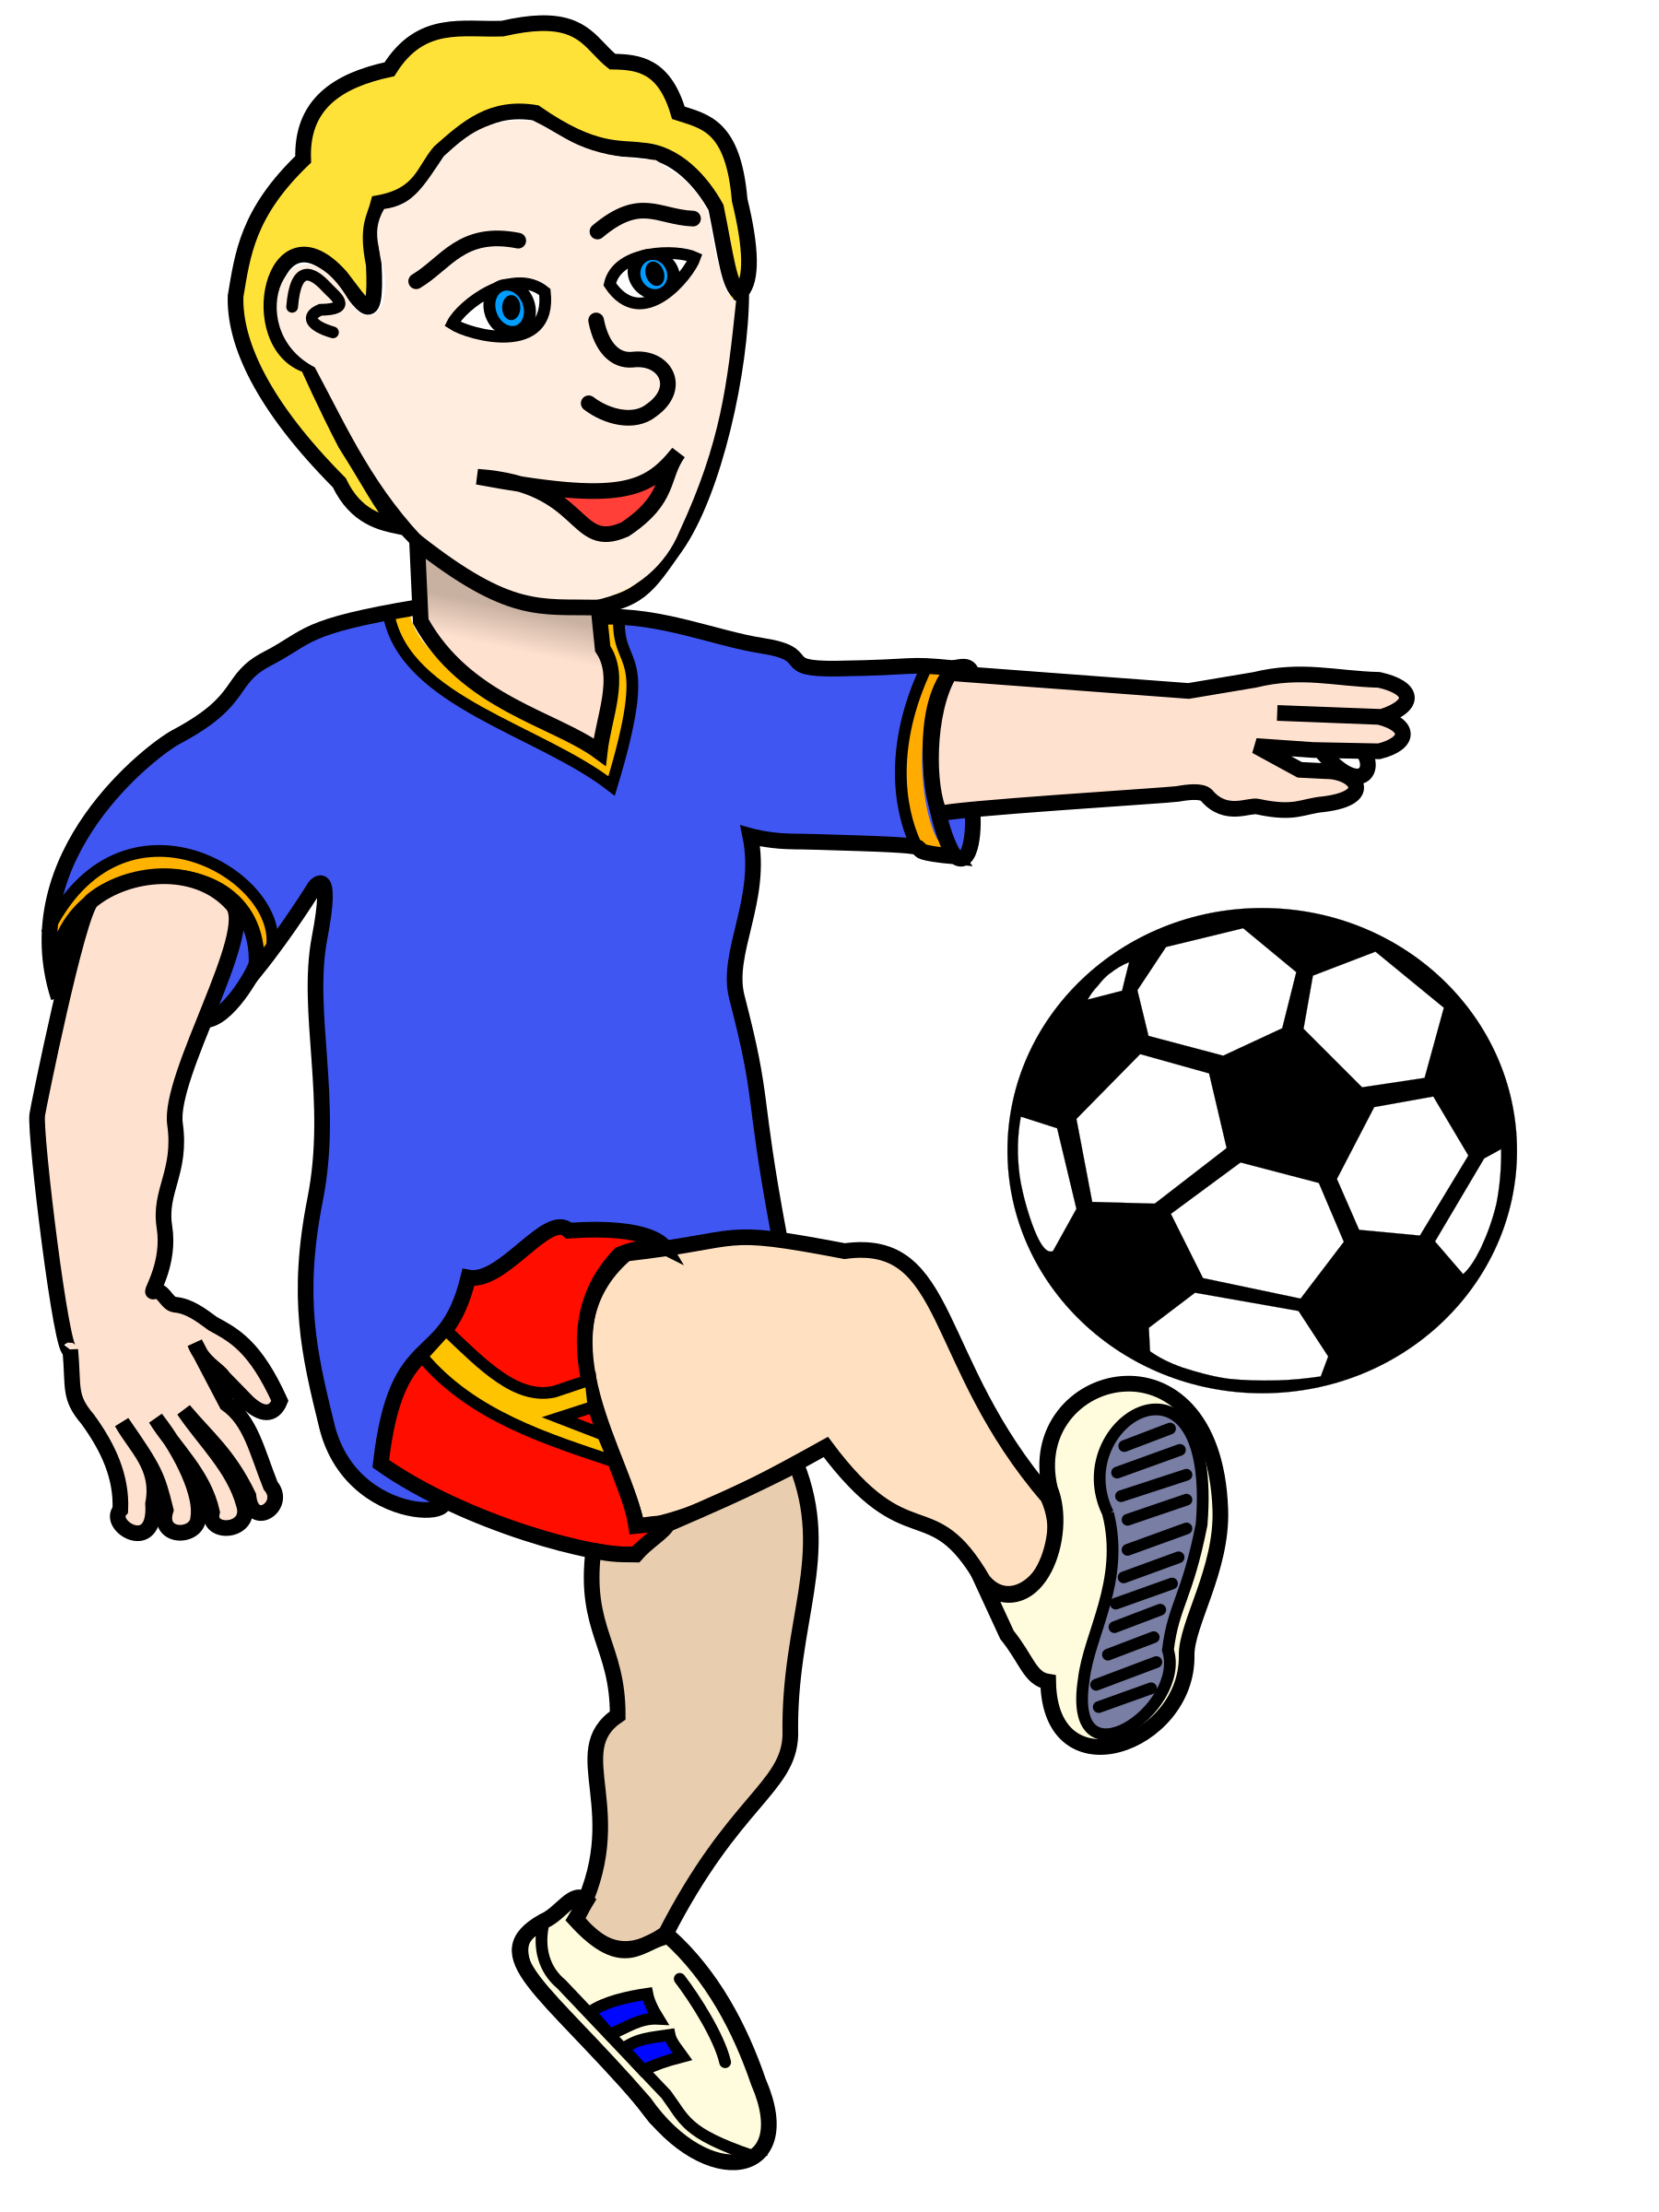 soccer player clipart at getdrawings com free for personal use rh getdrawings com soccer player clip art silhouettes soccer player clipart vector